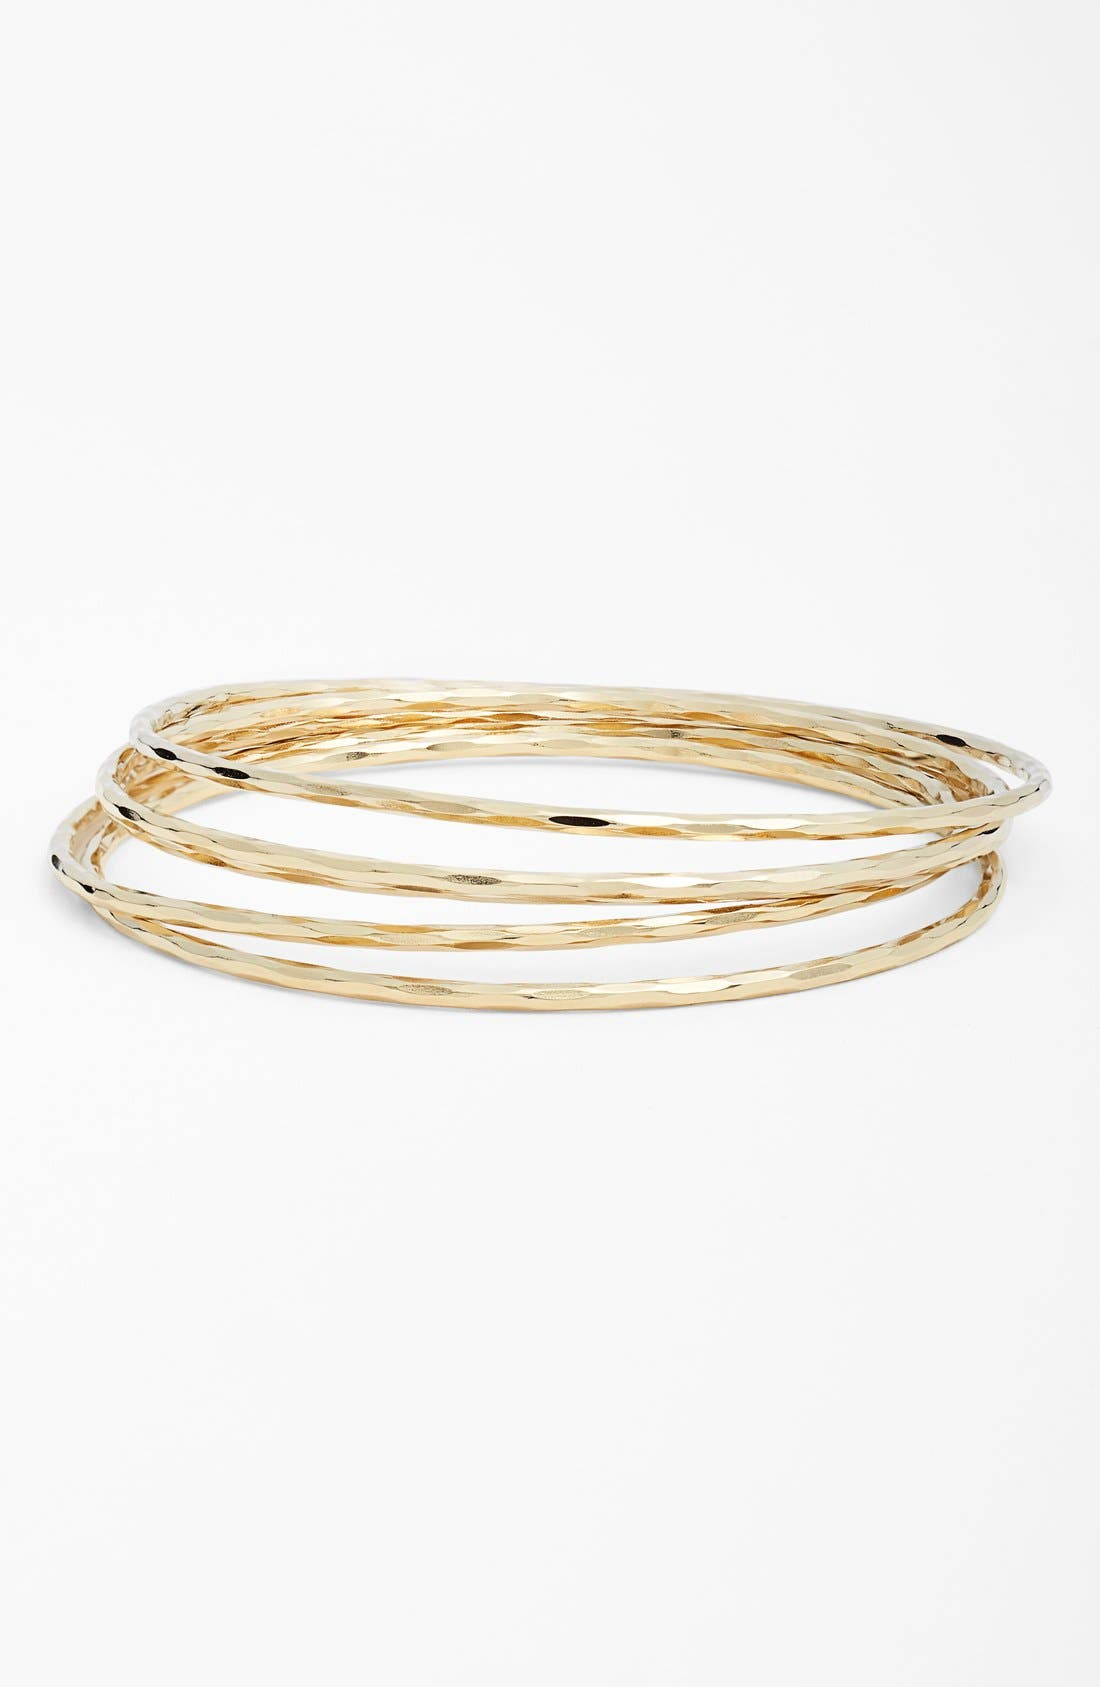 Alternate Image 1 Selected - Nordstrom Hammered Bangles (Set of 5)